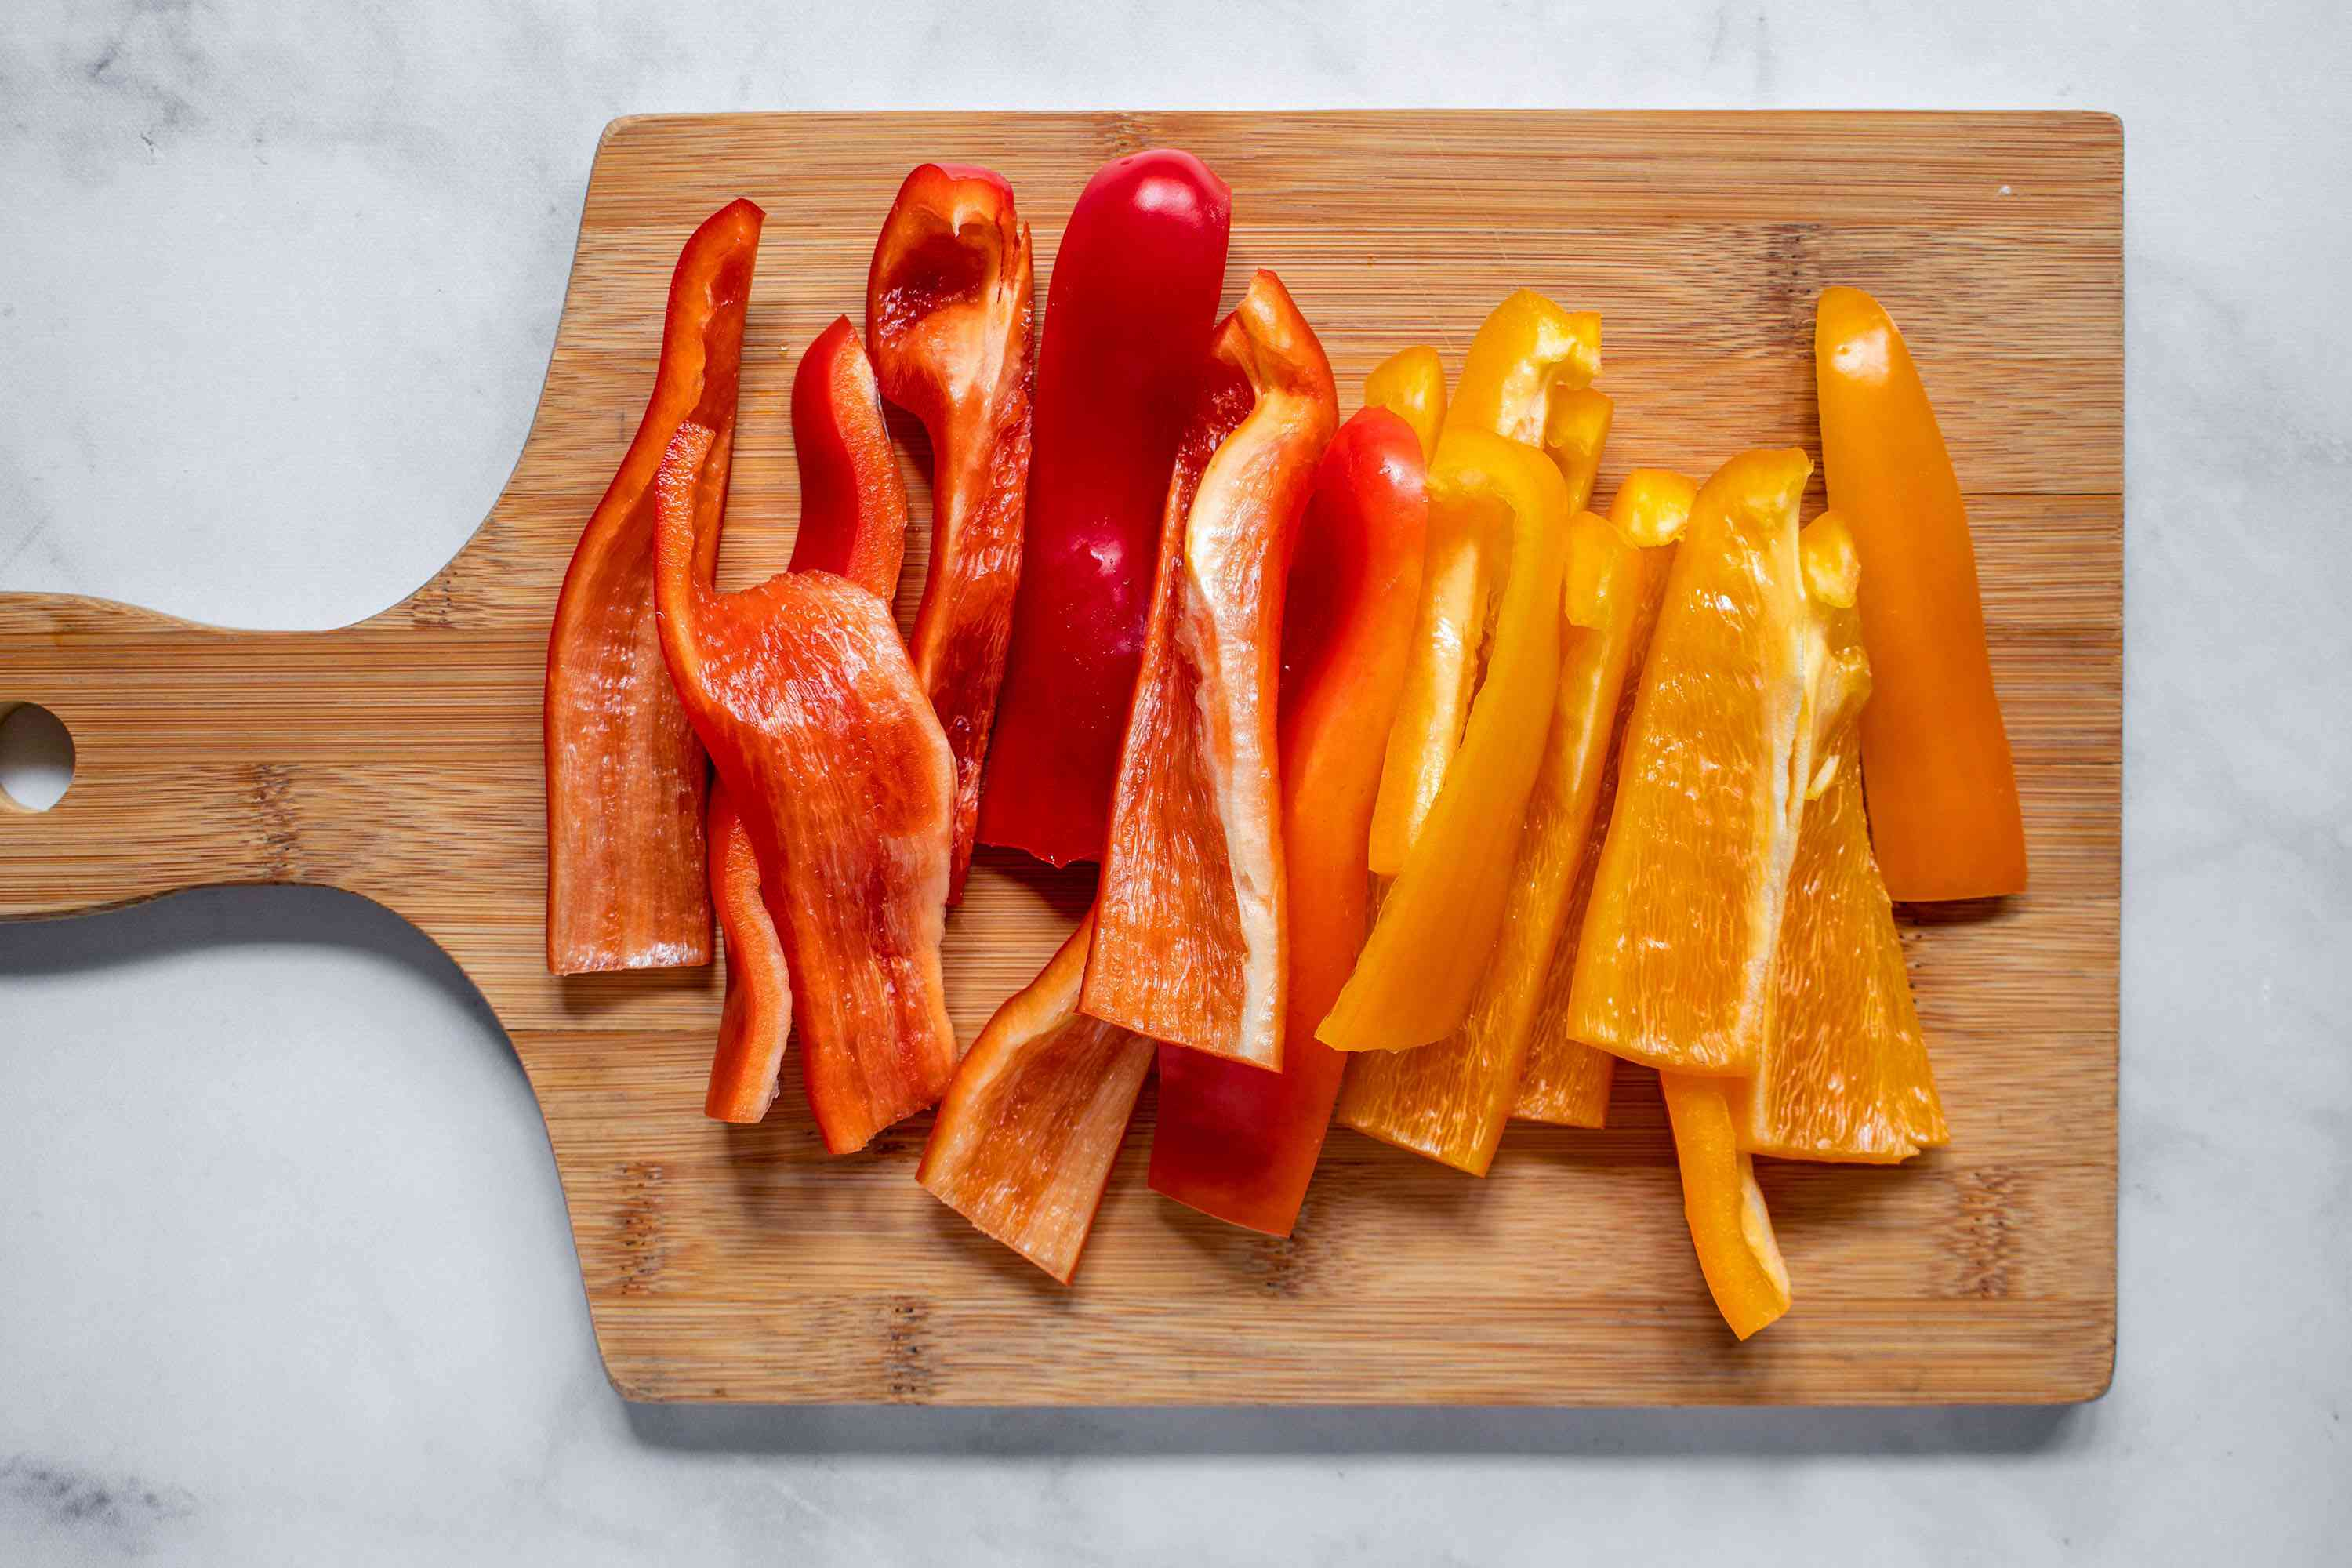 Cut the peppers lengthwise into 1/2-inch slices